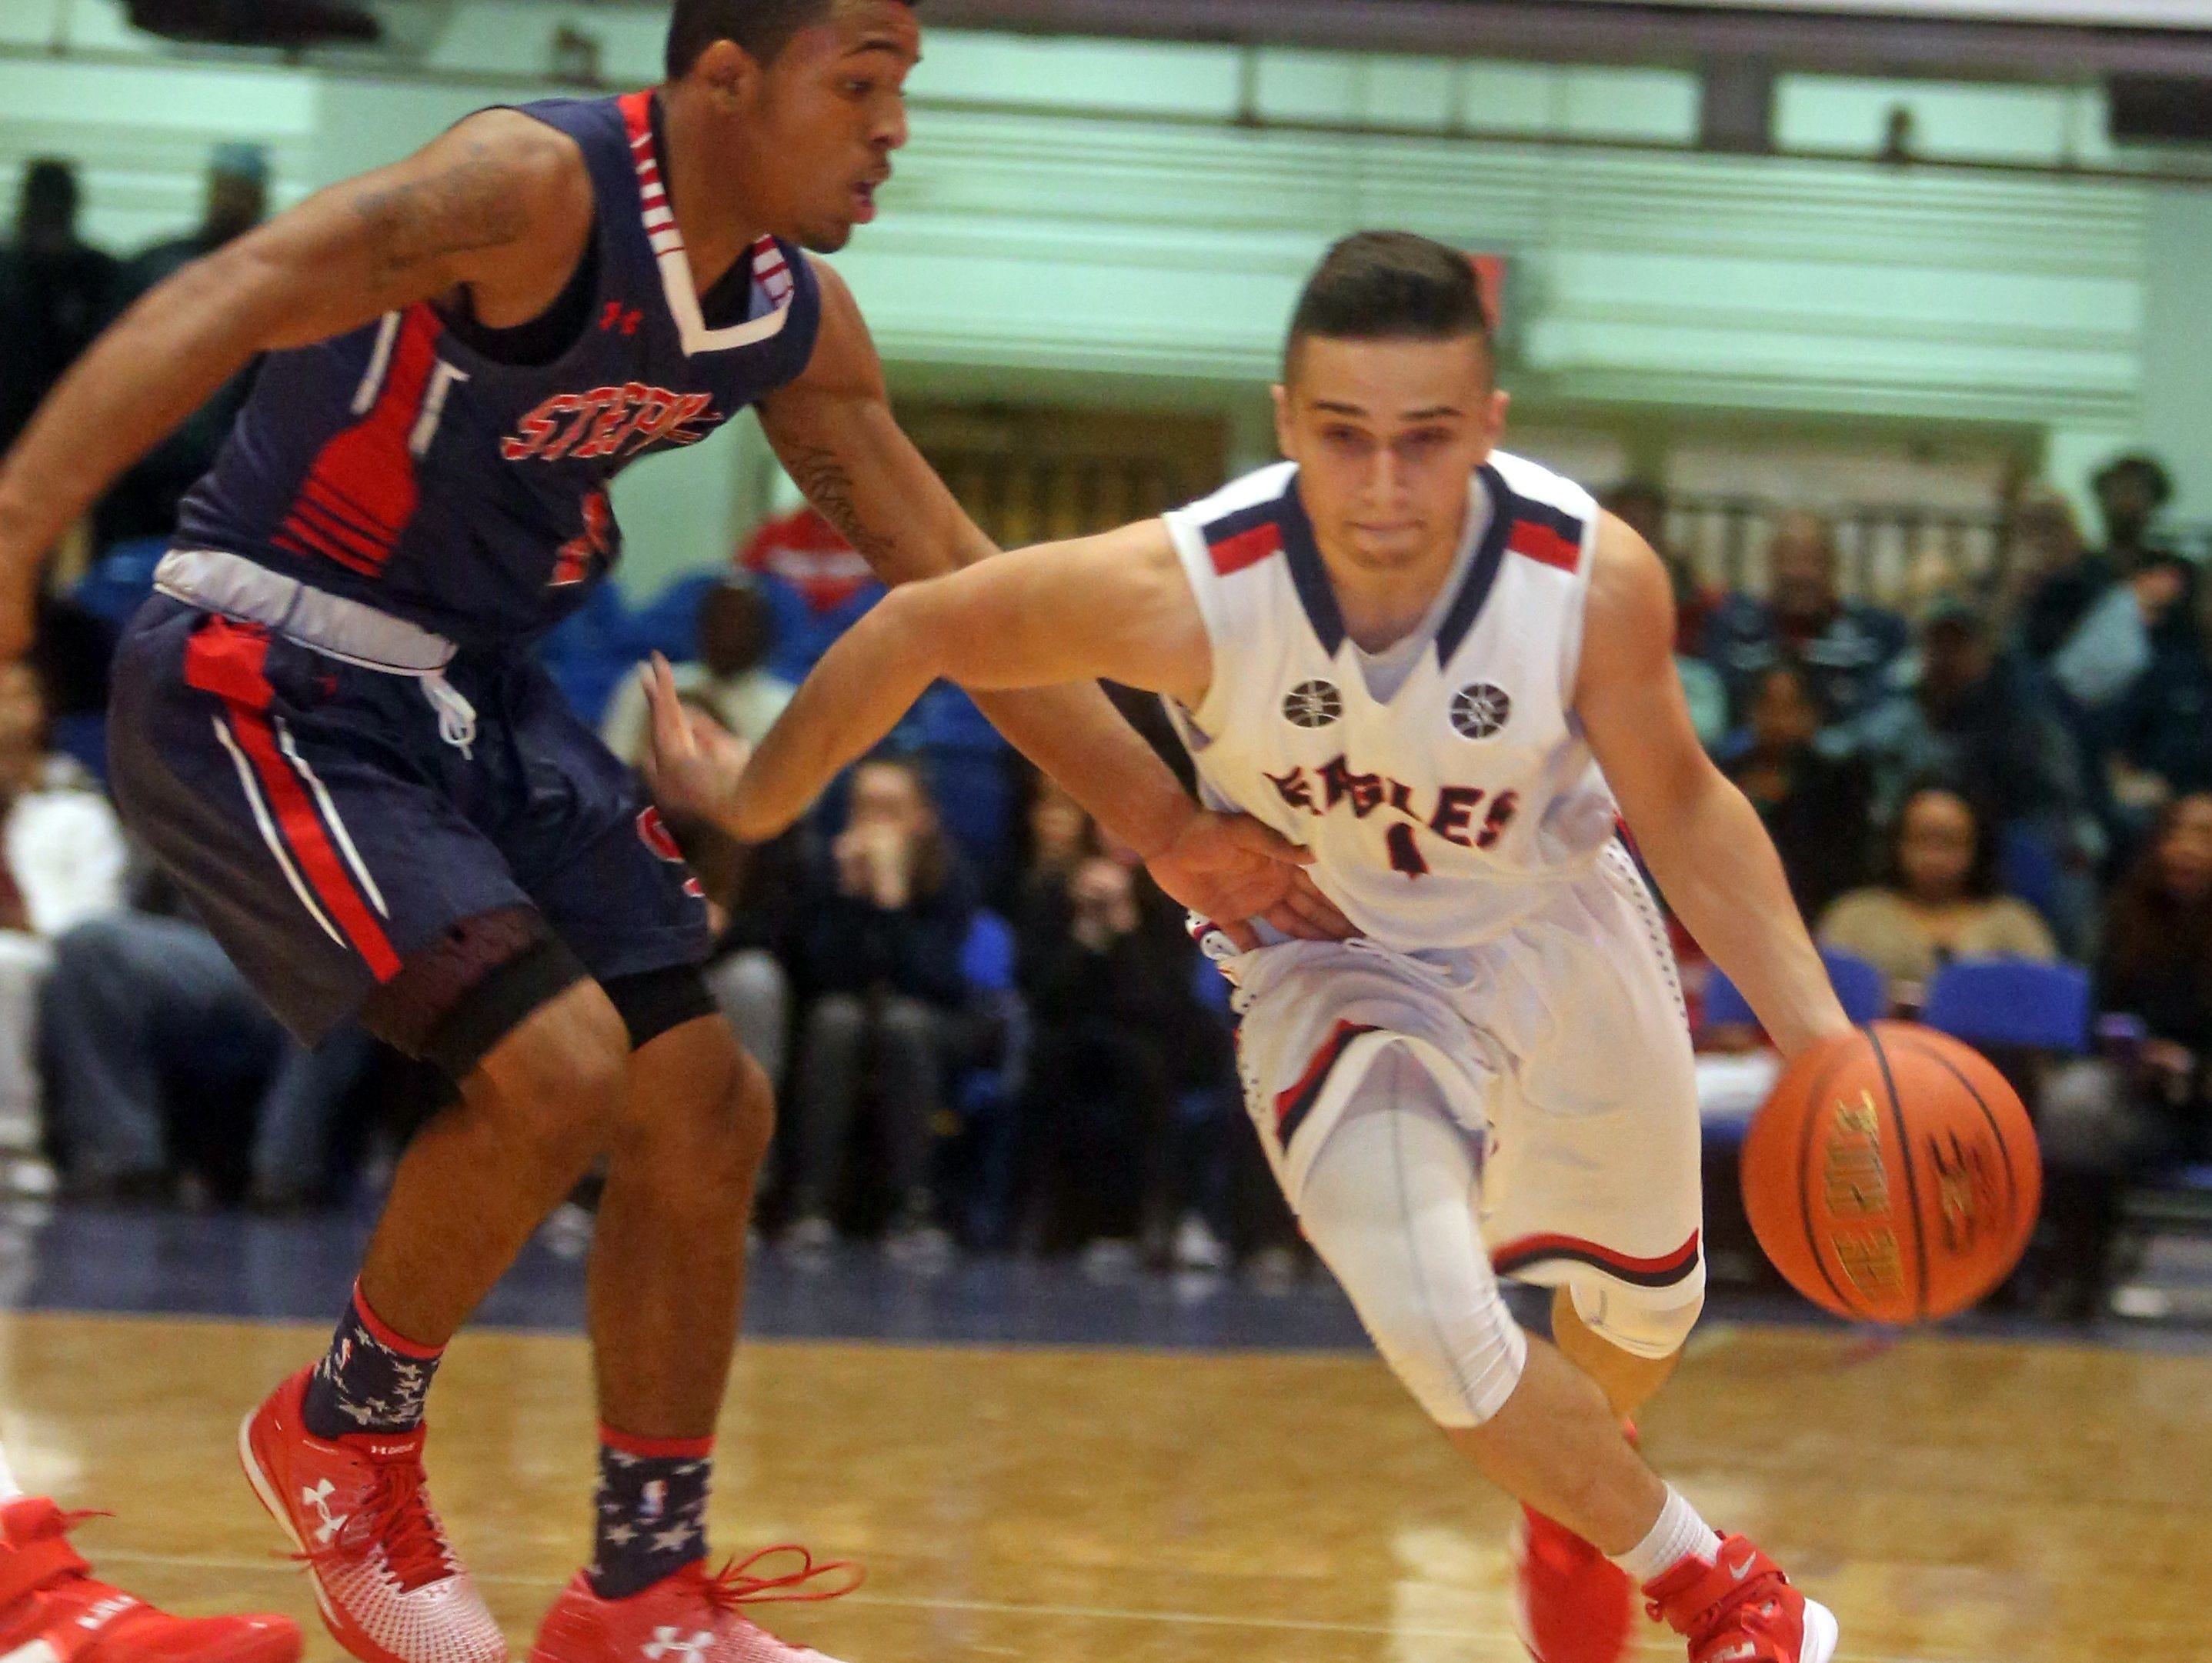 Eastchester's Benny DiMirco drives during Eastchester's 57-54 loss to Stepinac at the Slam Dunk Tournament at the Westchester County Center in White Plains Dec. 26, 2015.